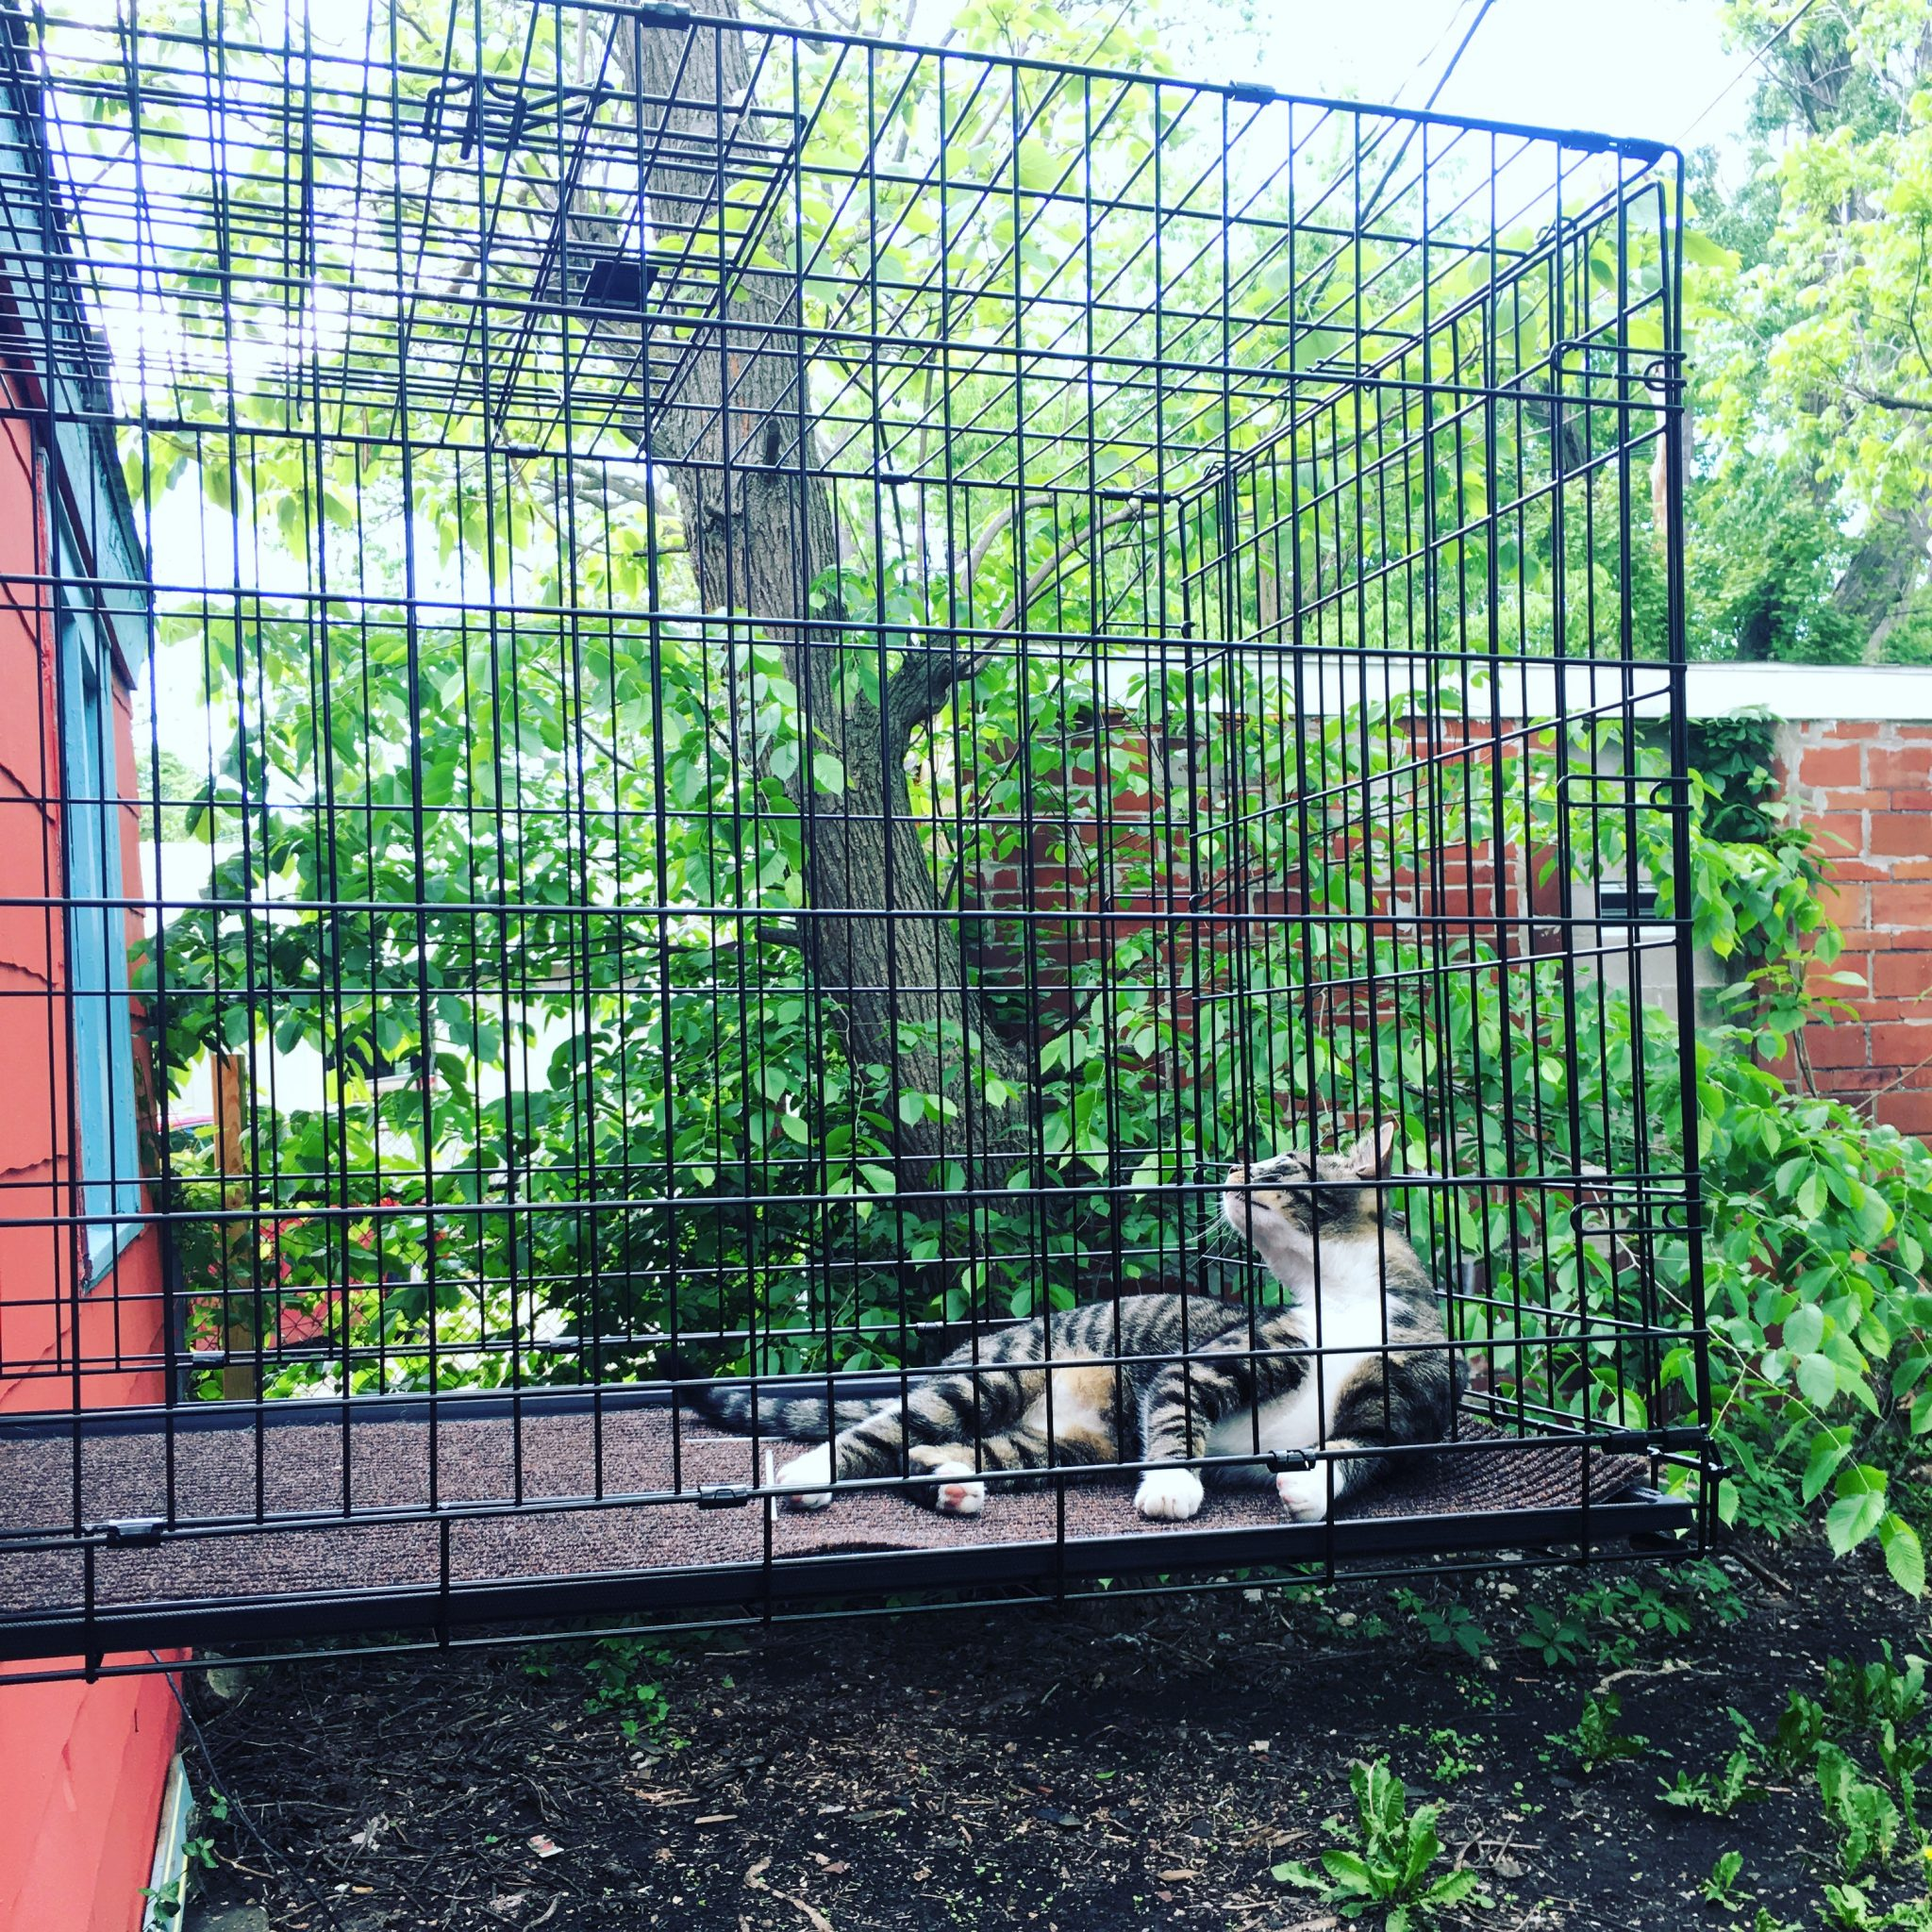 Cat in dog crate catio